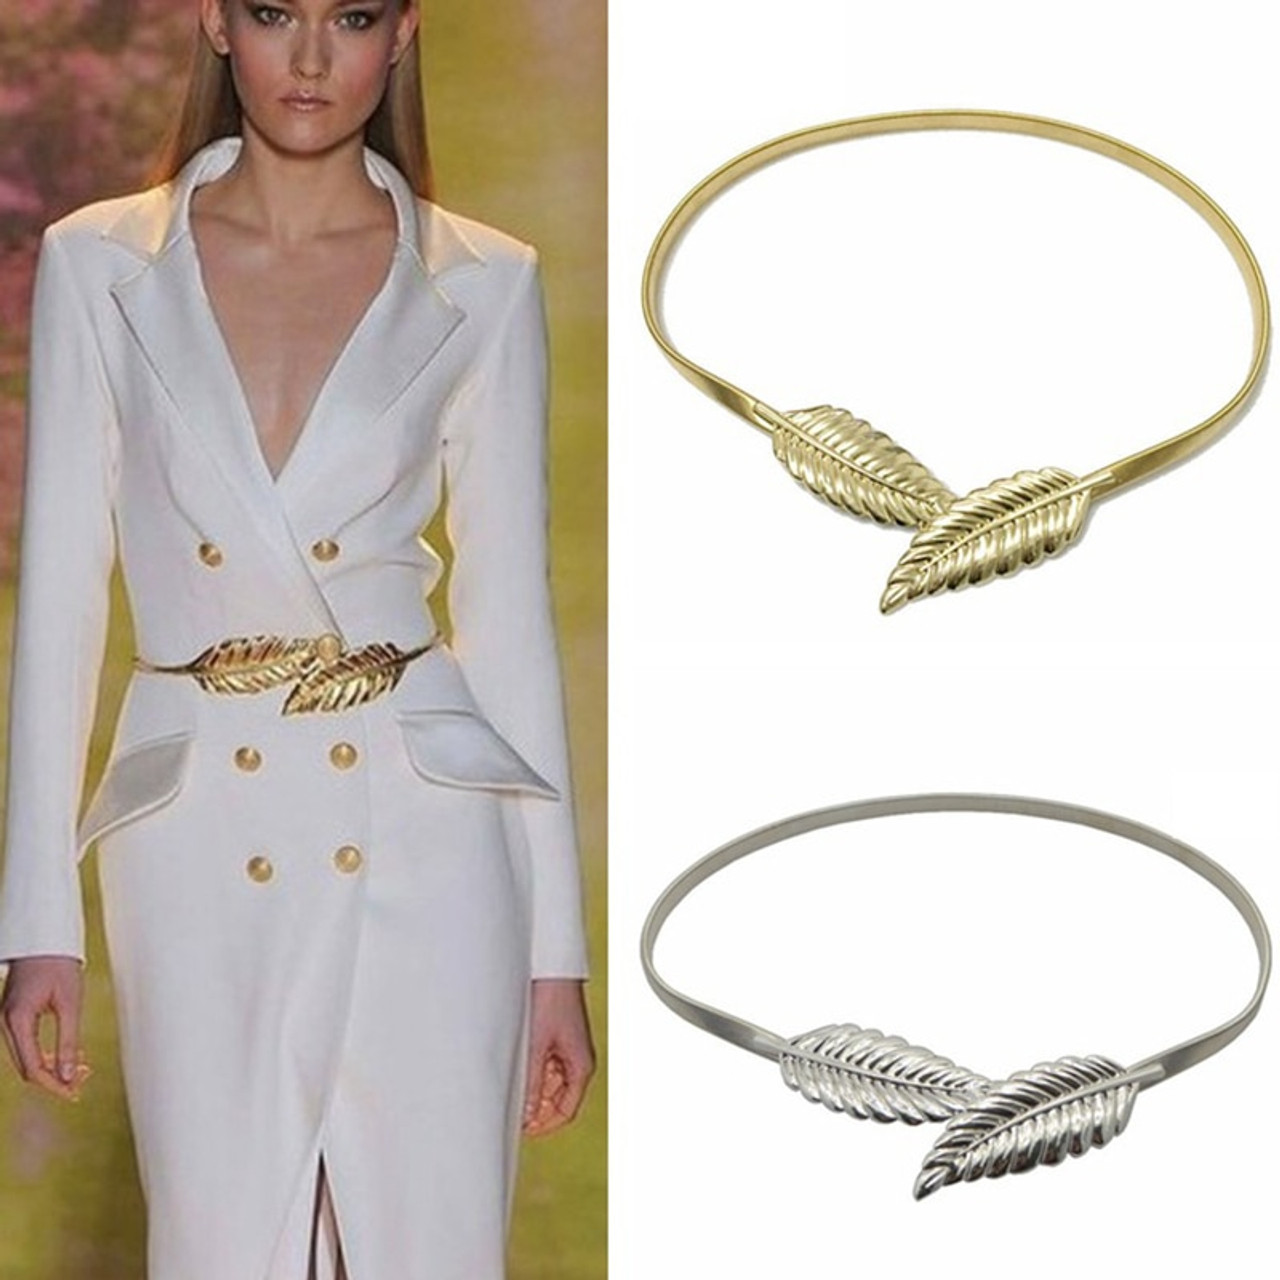 b5b4a4d5047 gold silvery leaf shape wedding designer elastic belts for women girl  stretch skinny waist belt cummerbunds ...